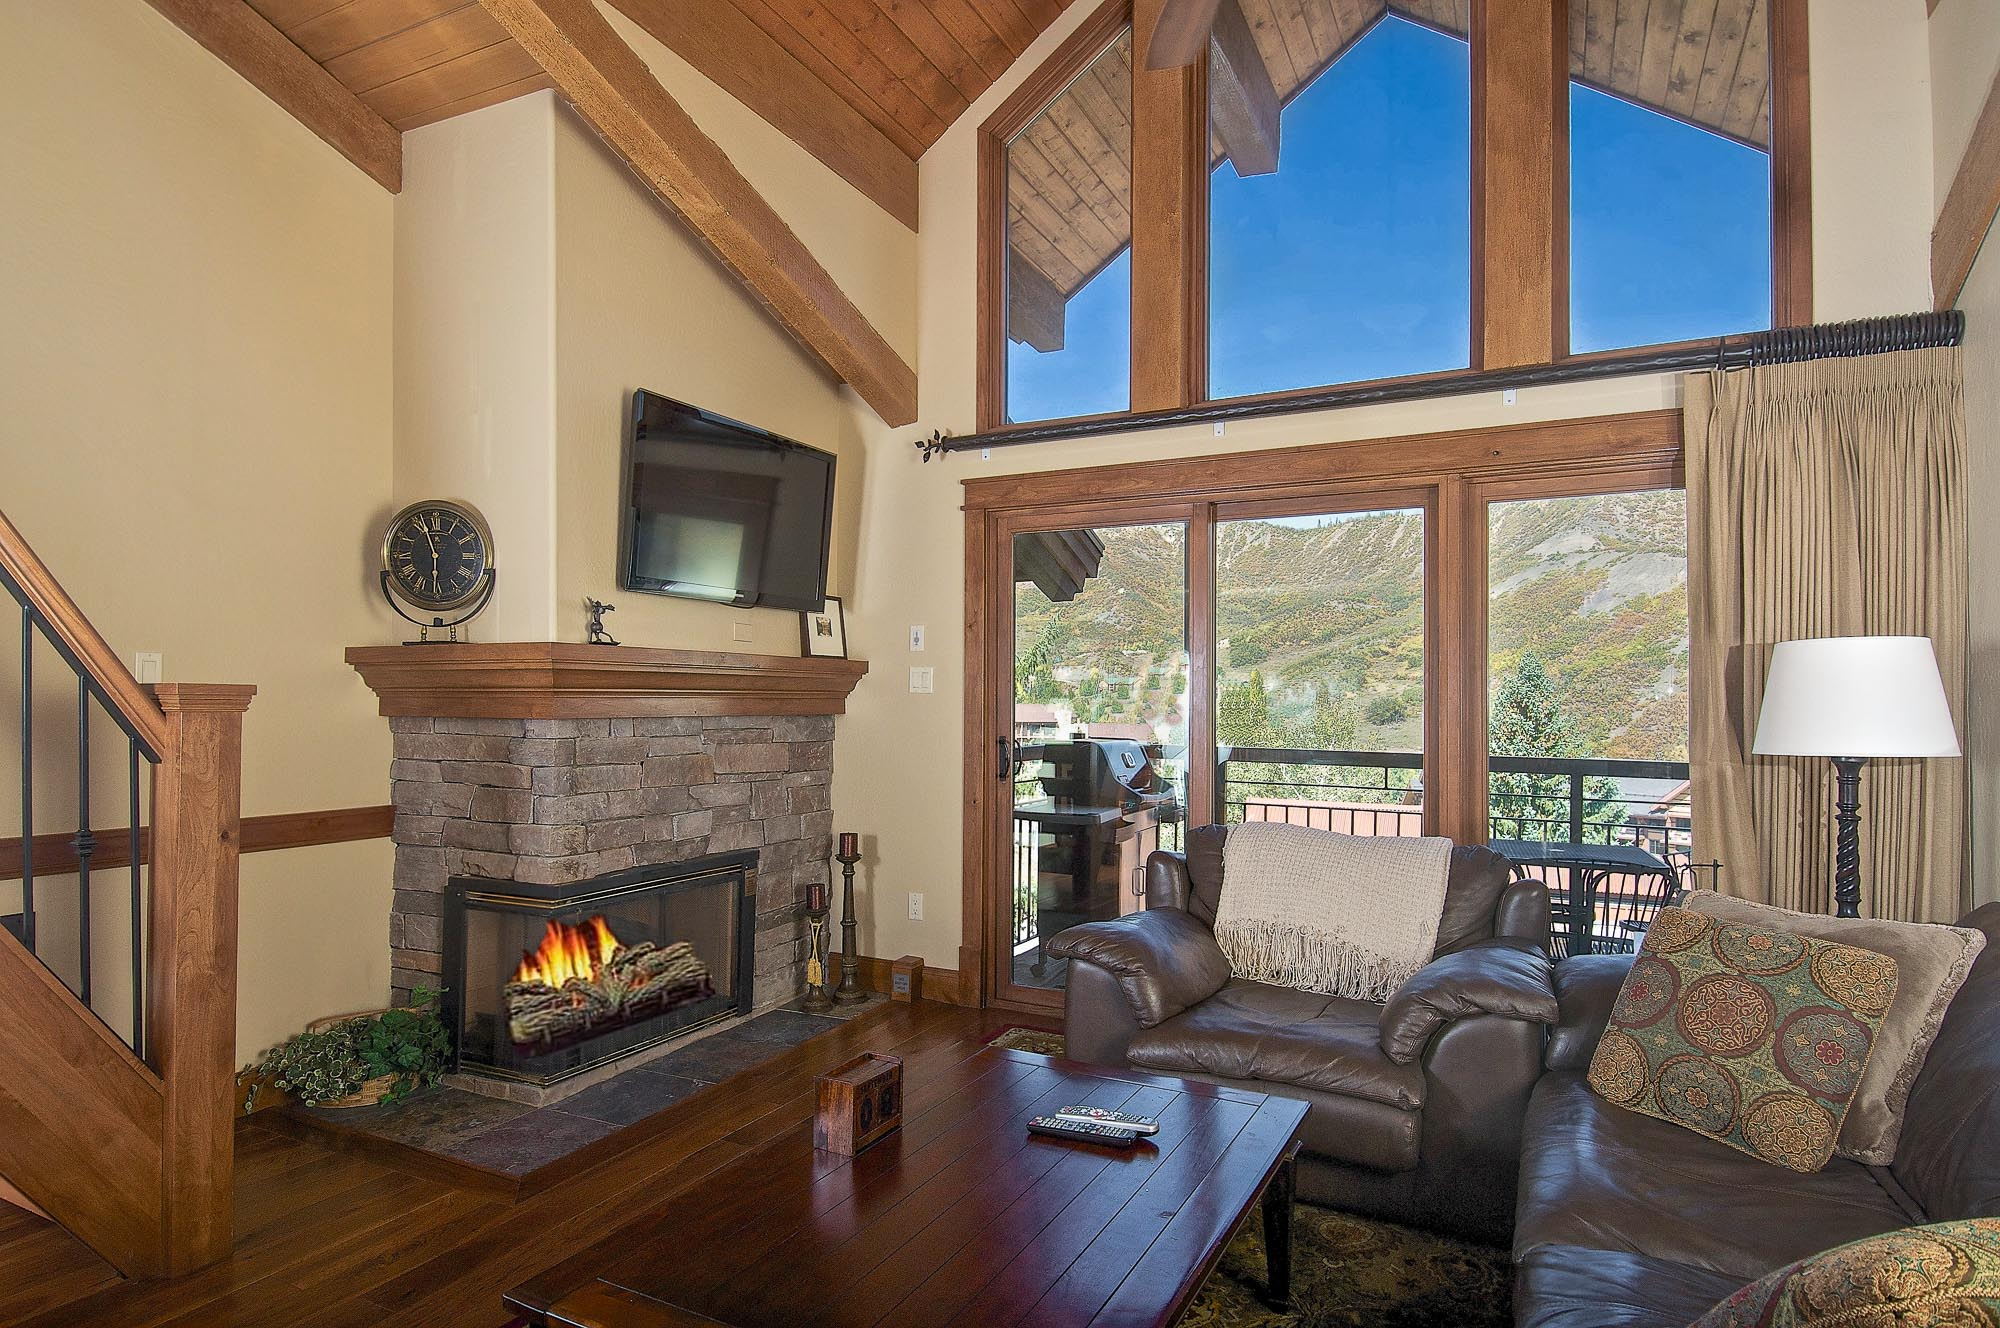 Condominium for Sale at The Location You Have Been Looking For! 400 Wood Road, Unit 2302 Snowmass Village, Colorado, 81615 United States